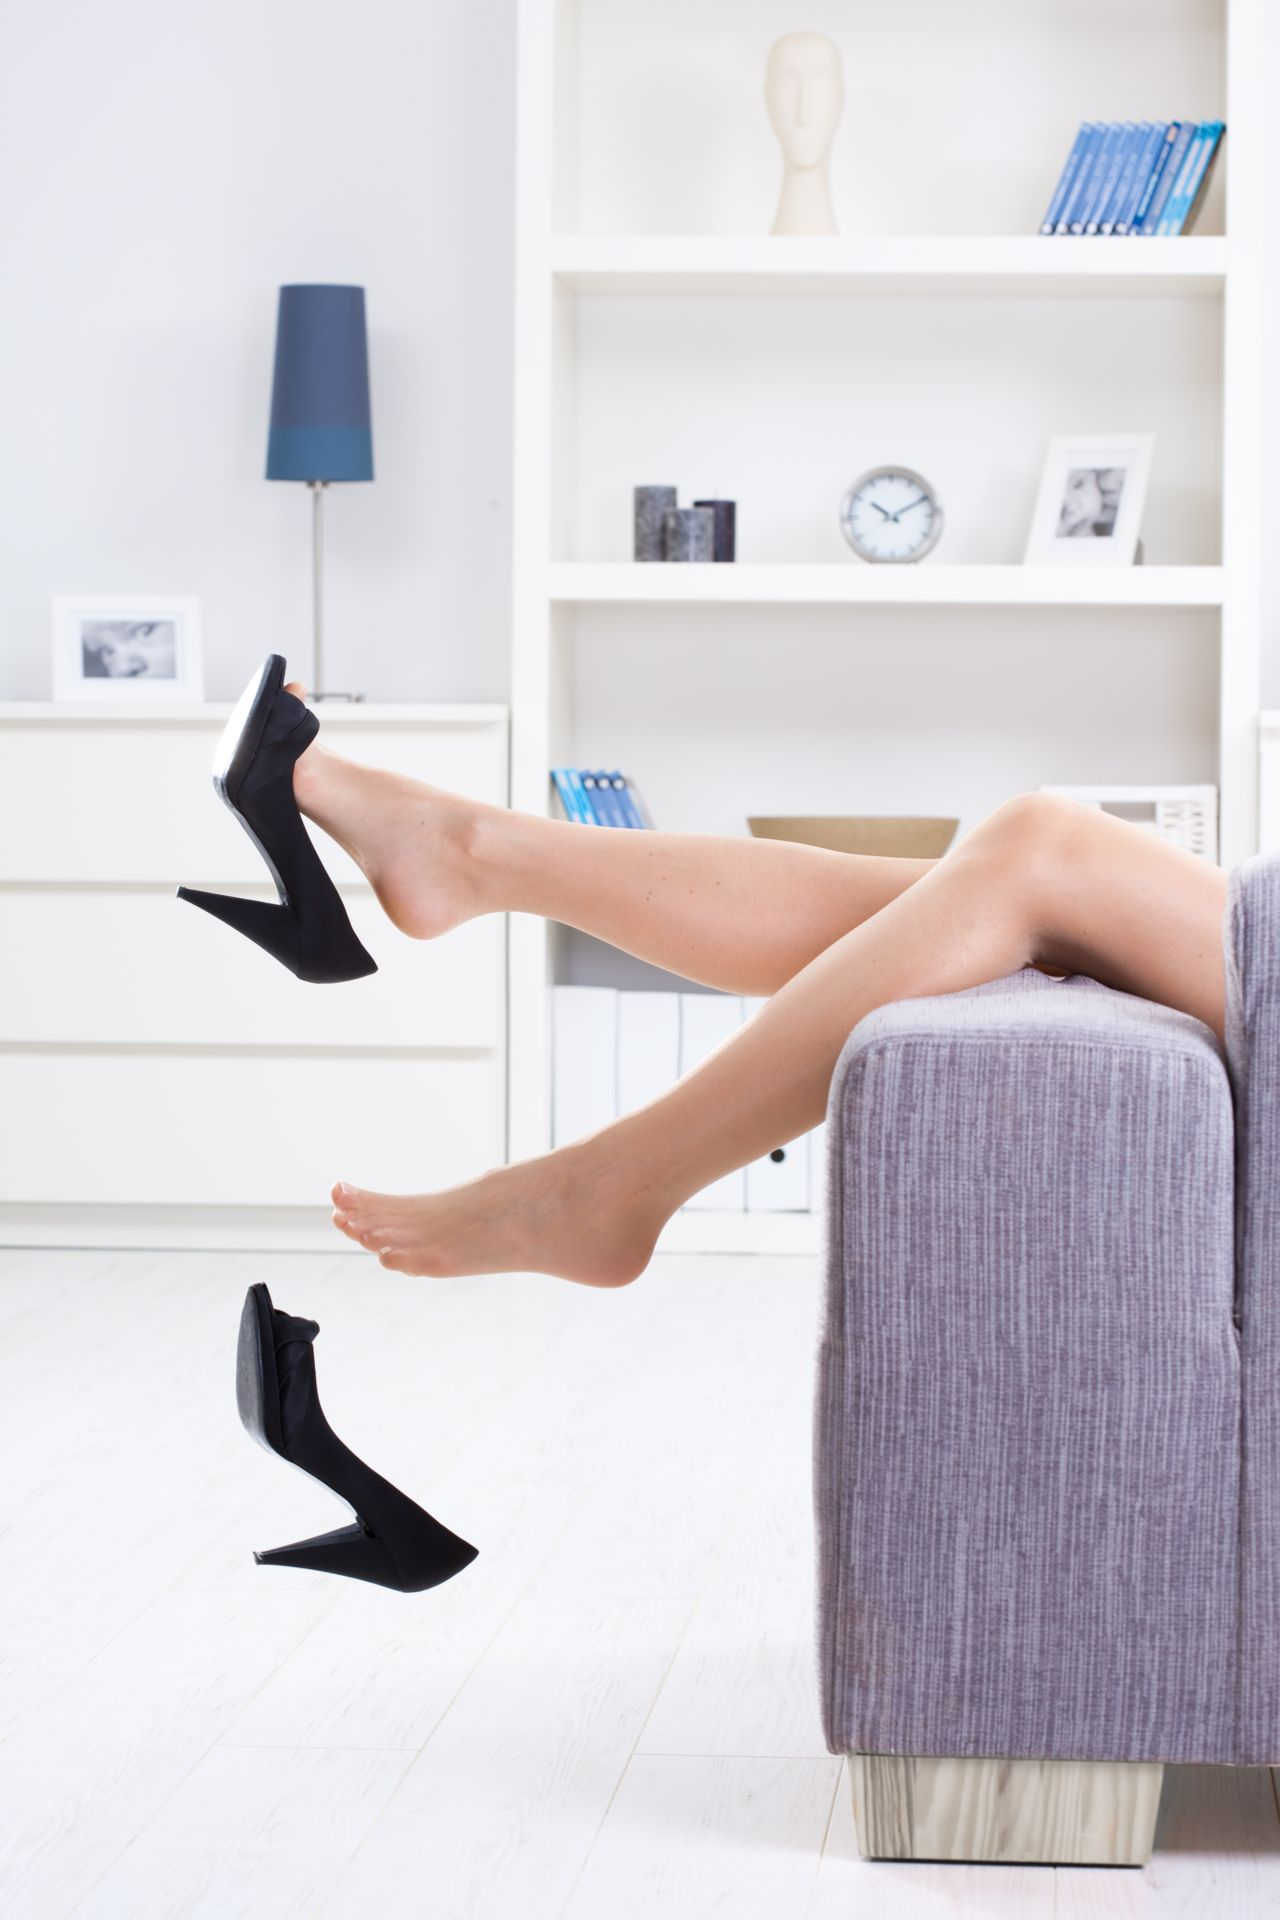 Try some at-home treatment options for bunions.